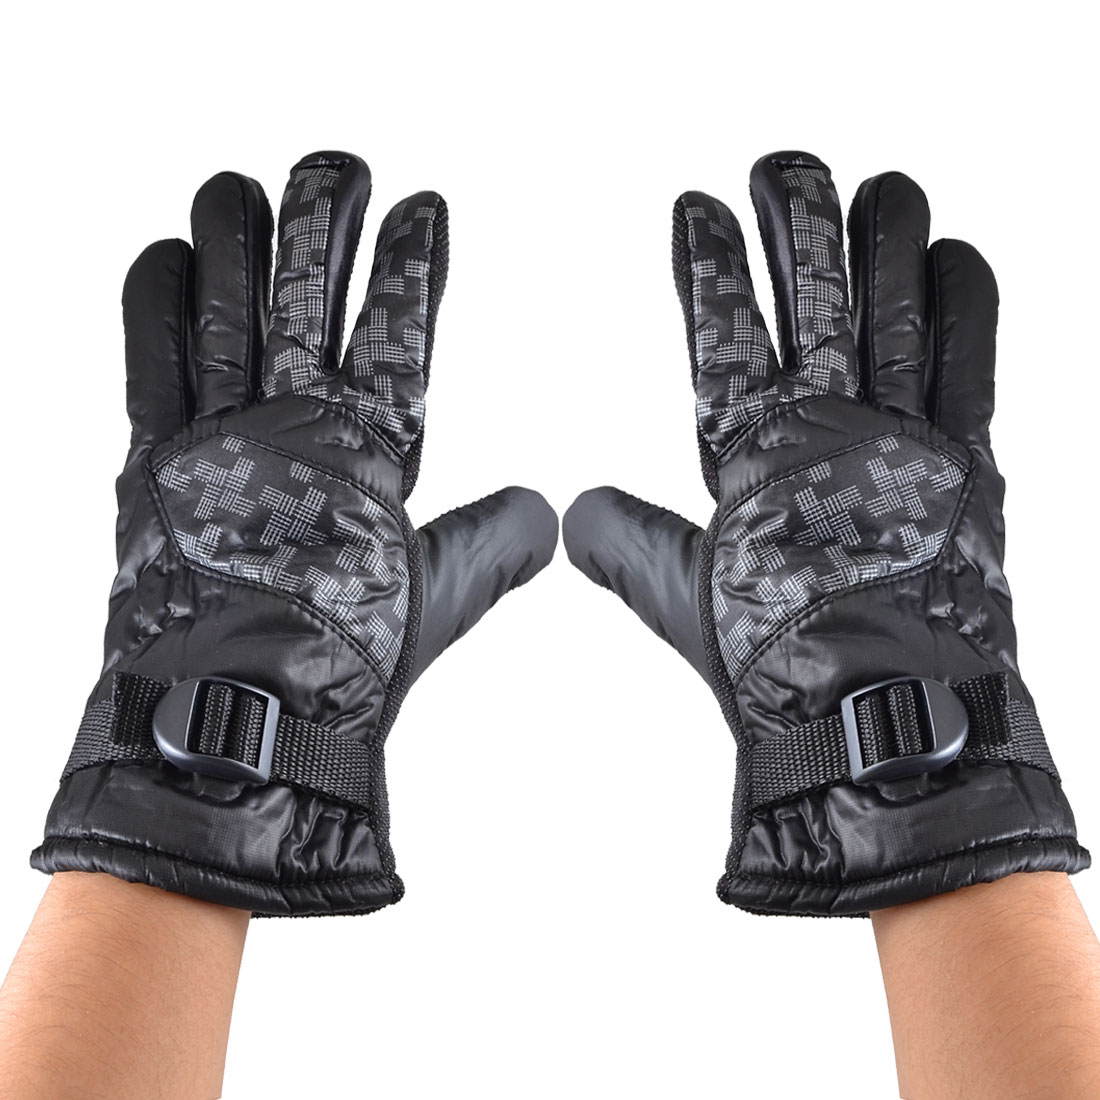 Men Adjustable Wrist Band Full Finger Cycling Skiing Gloves Black Gray Pair